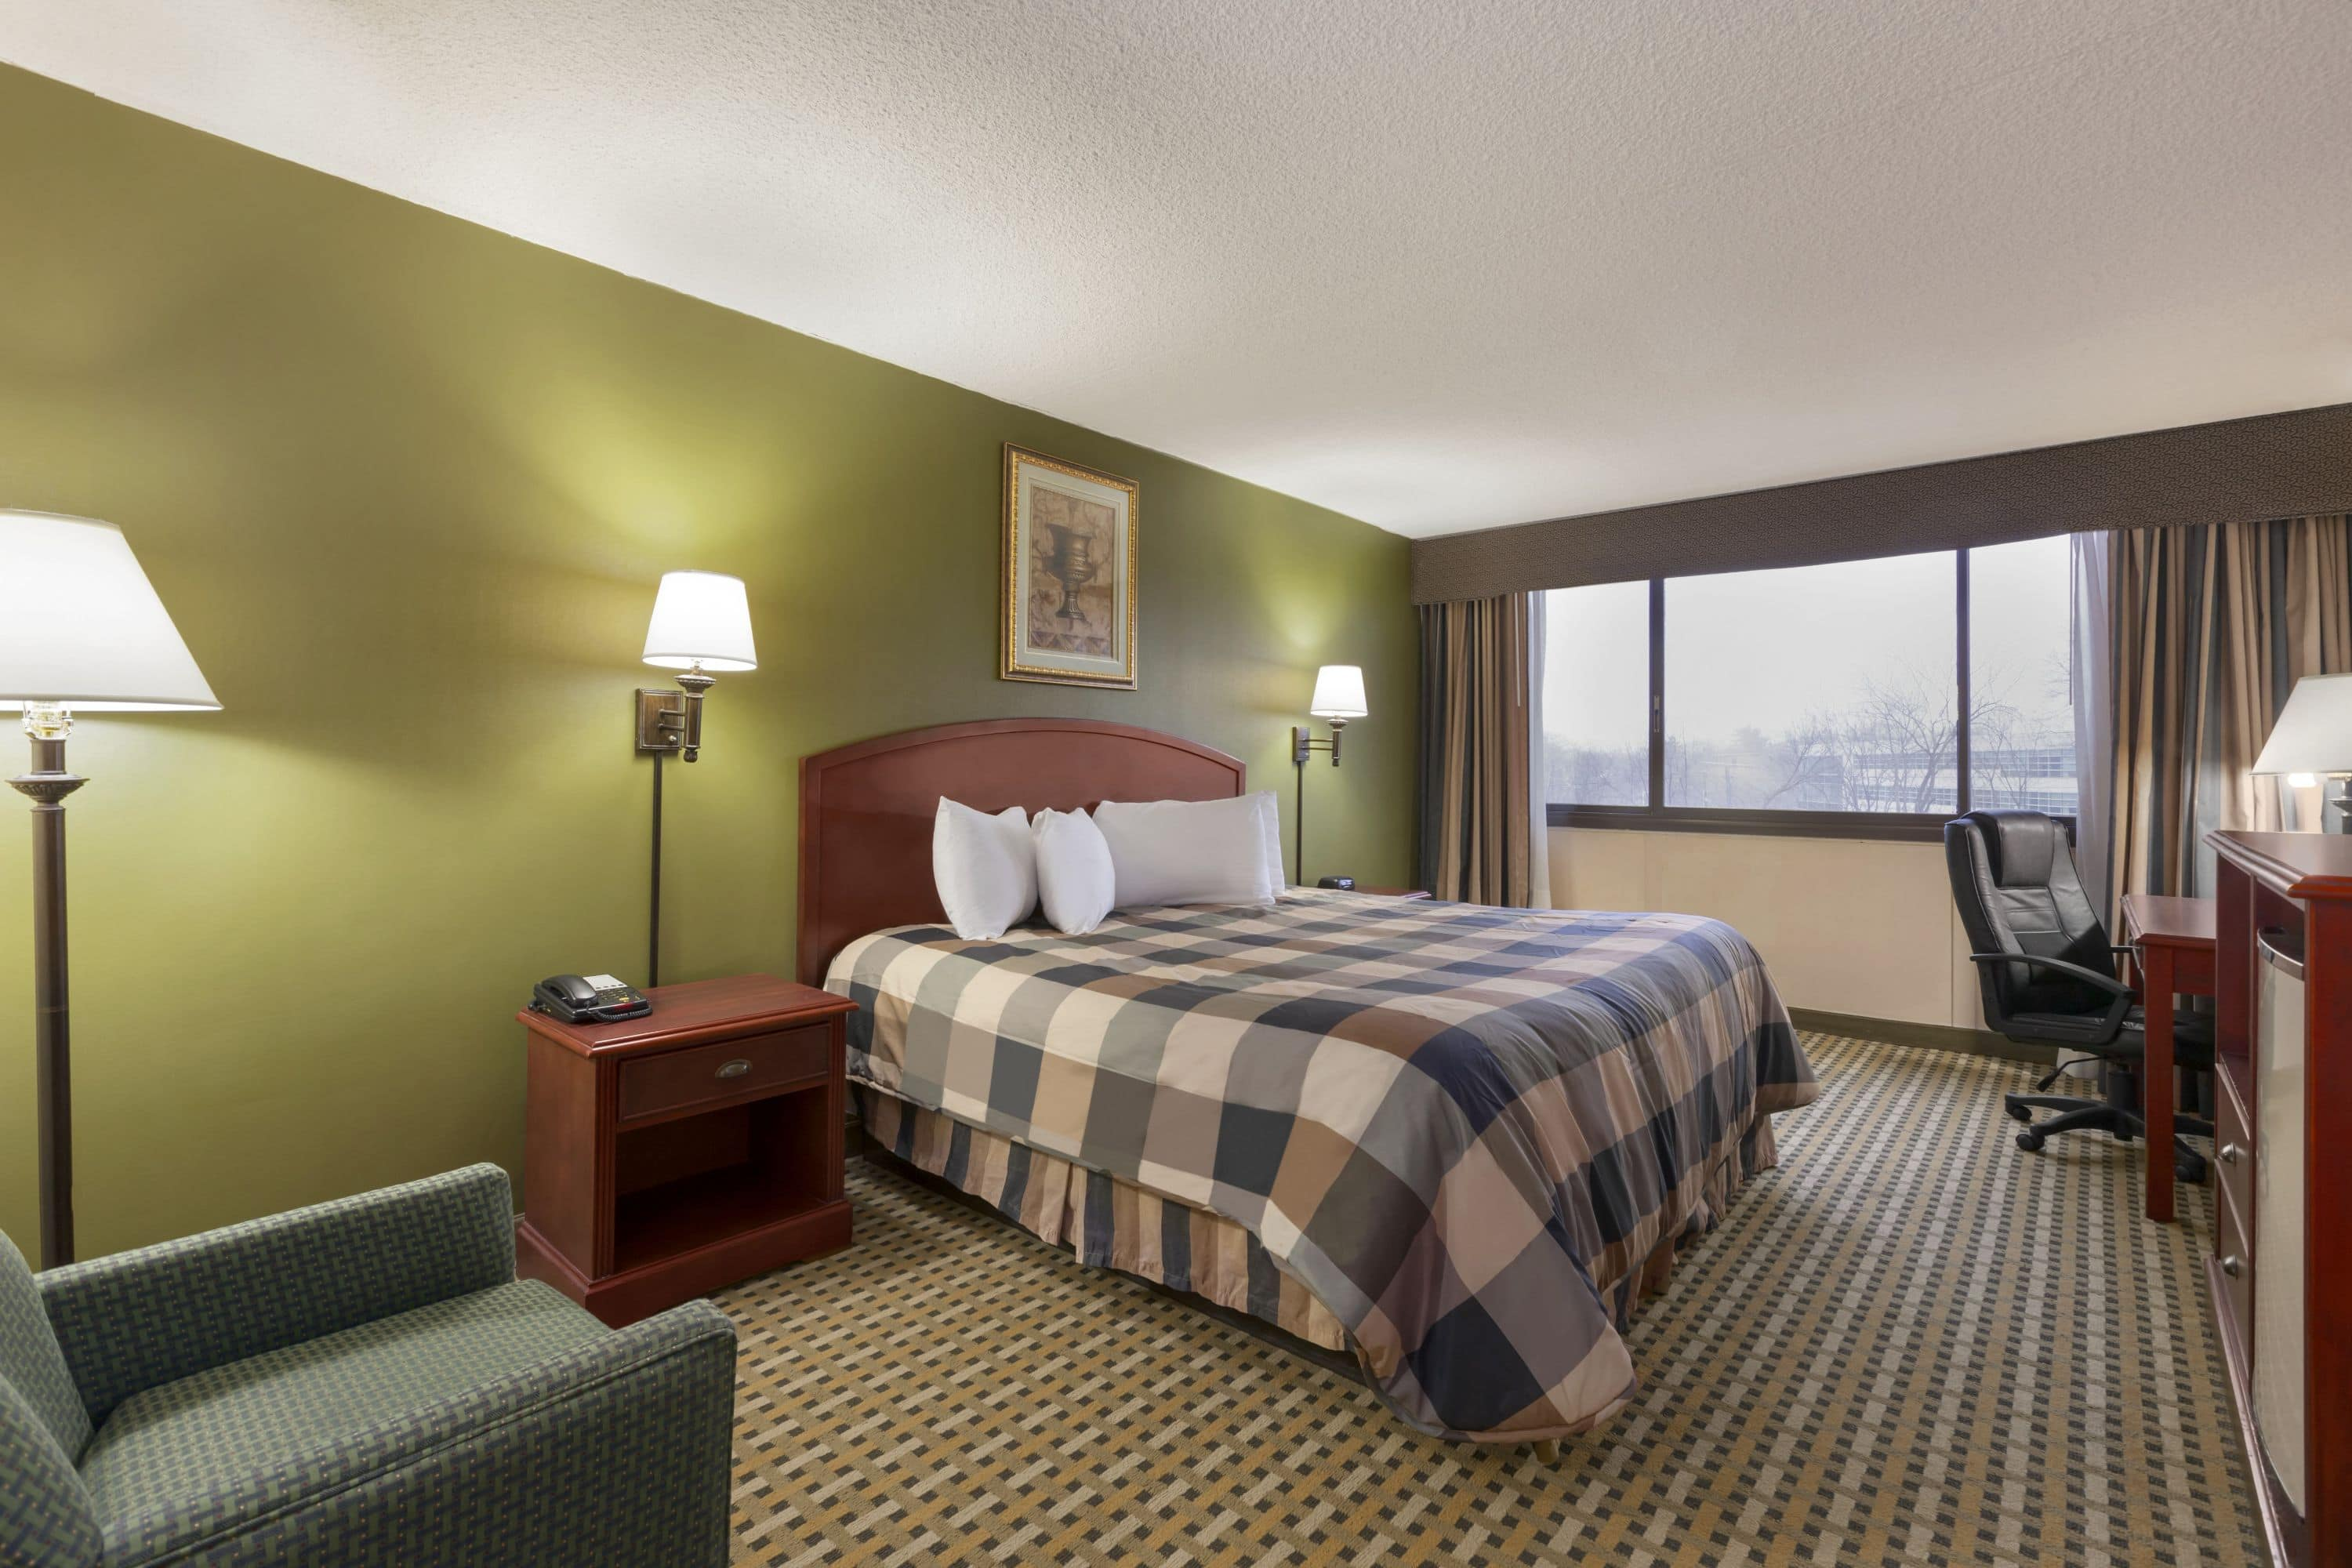 Great Guest Room At The Ramada Rochelle Park Near Paramus In New Jersey With Hotels Nj